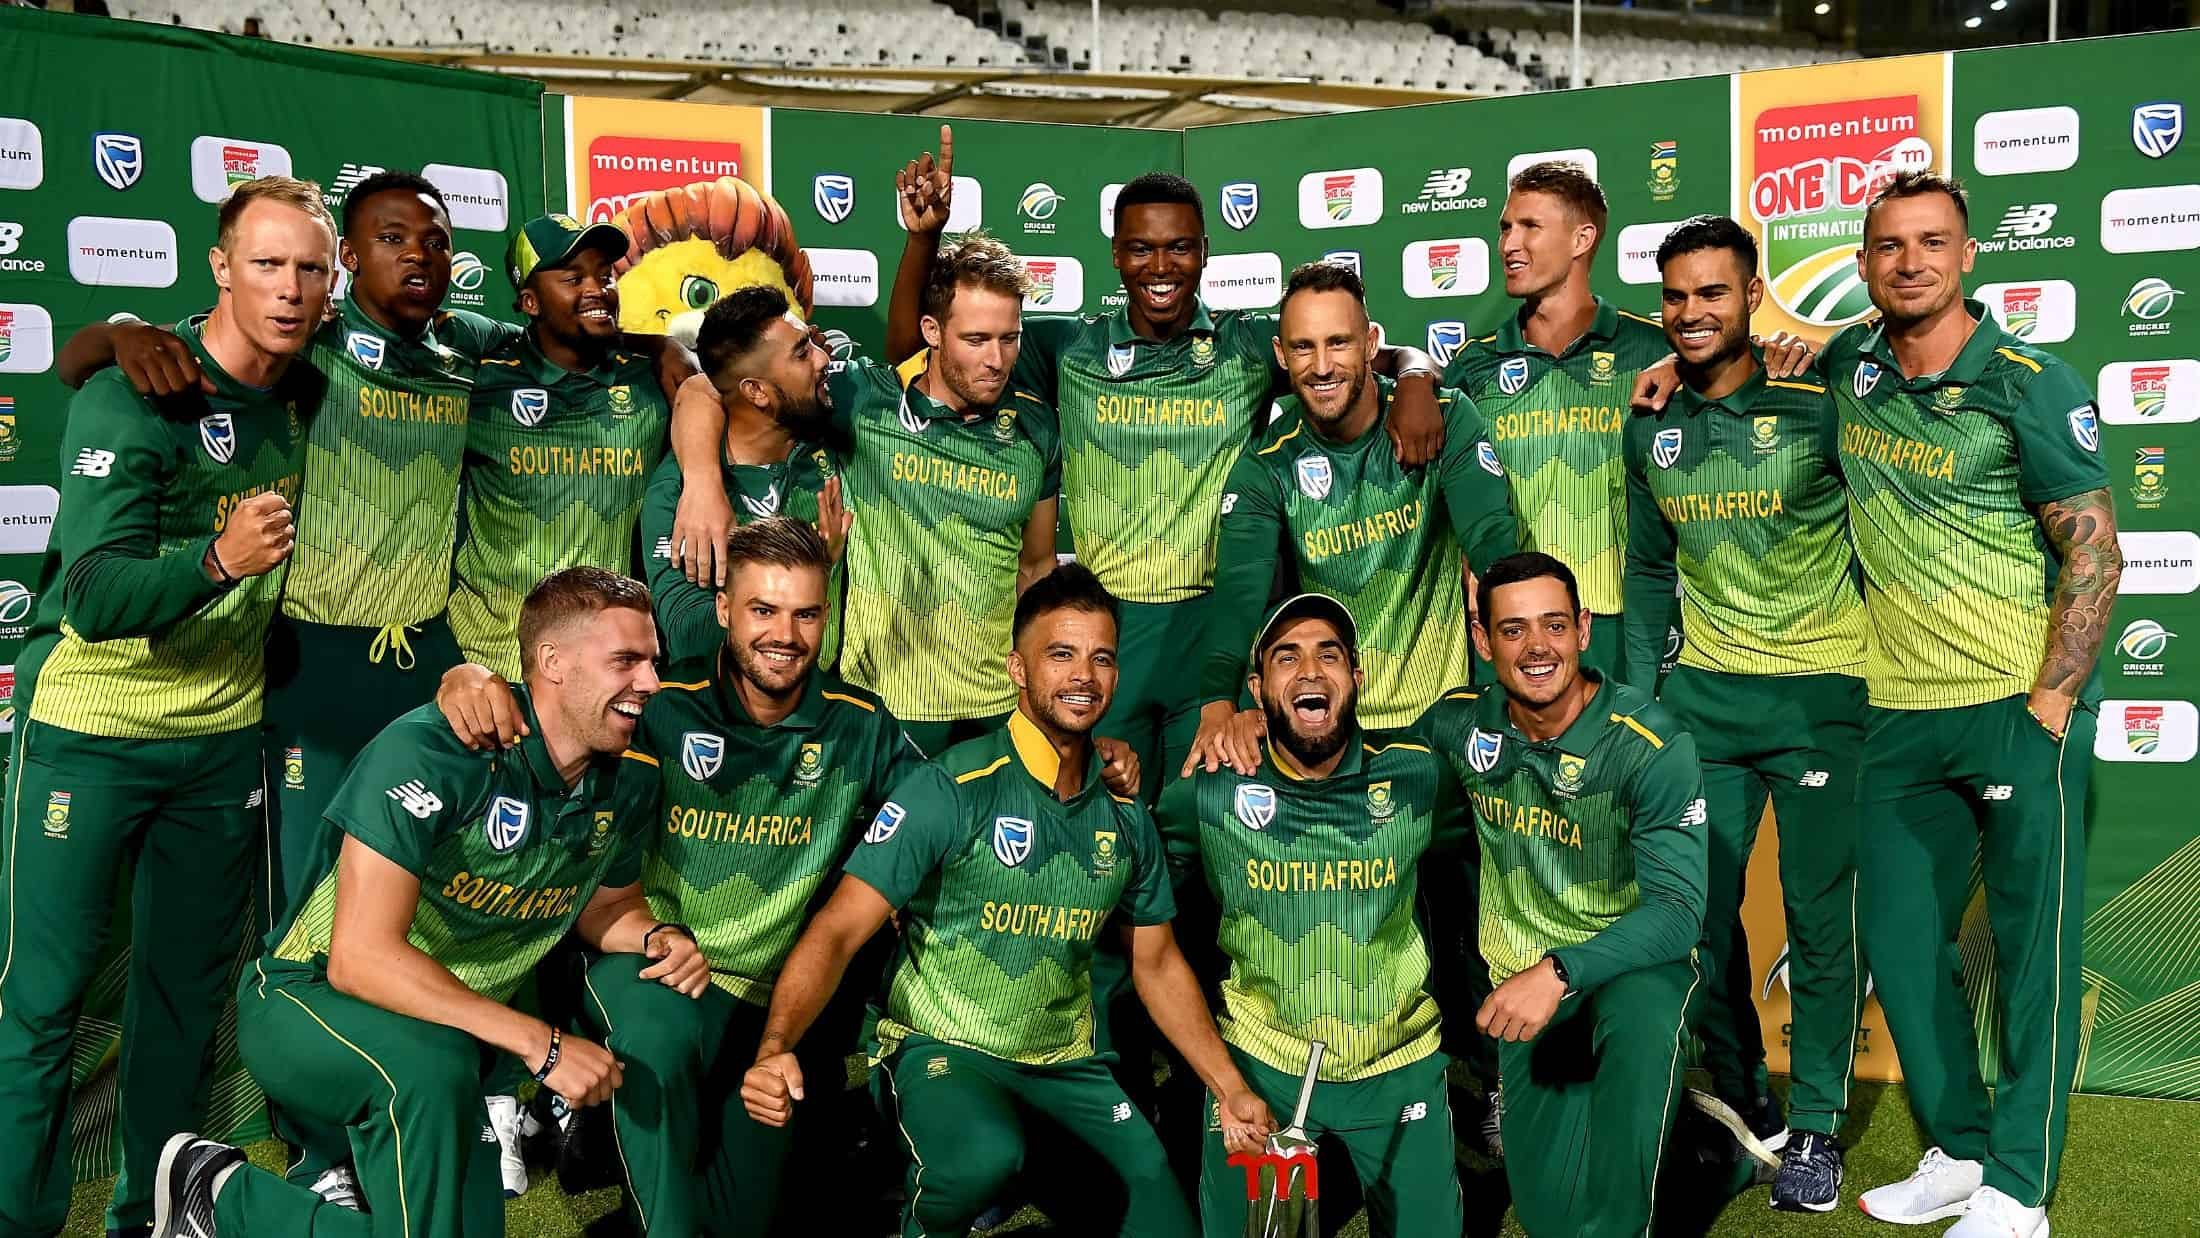 The South African cricket team posing for a photo